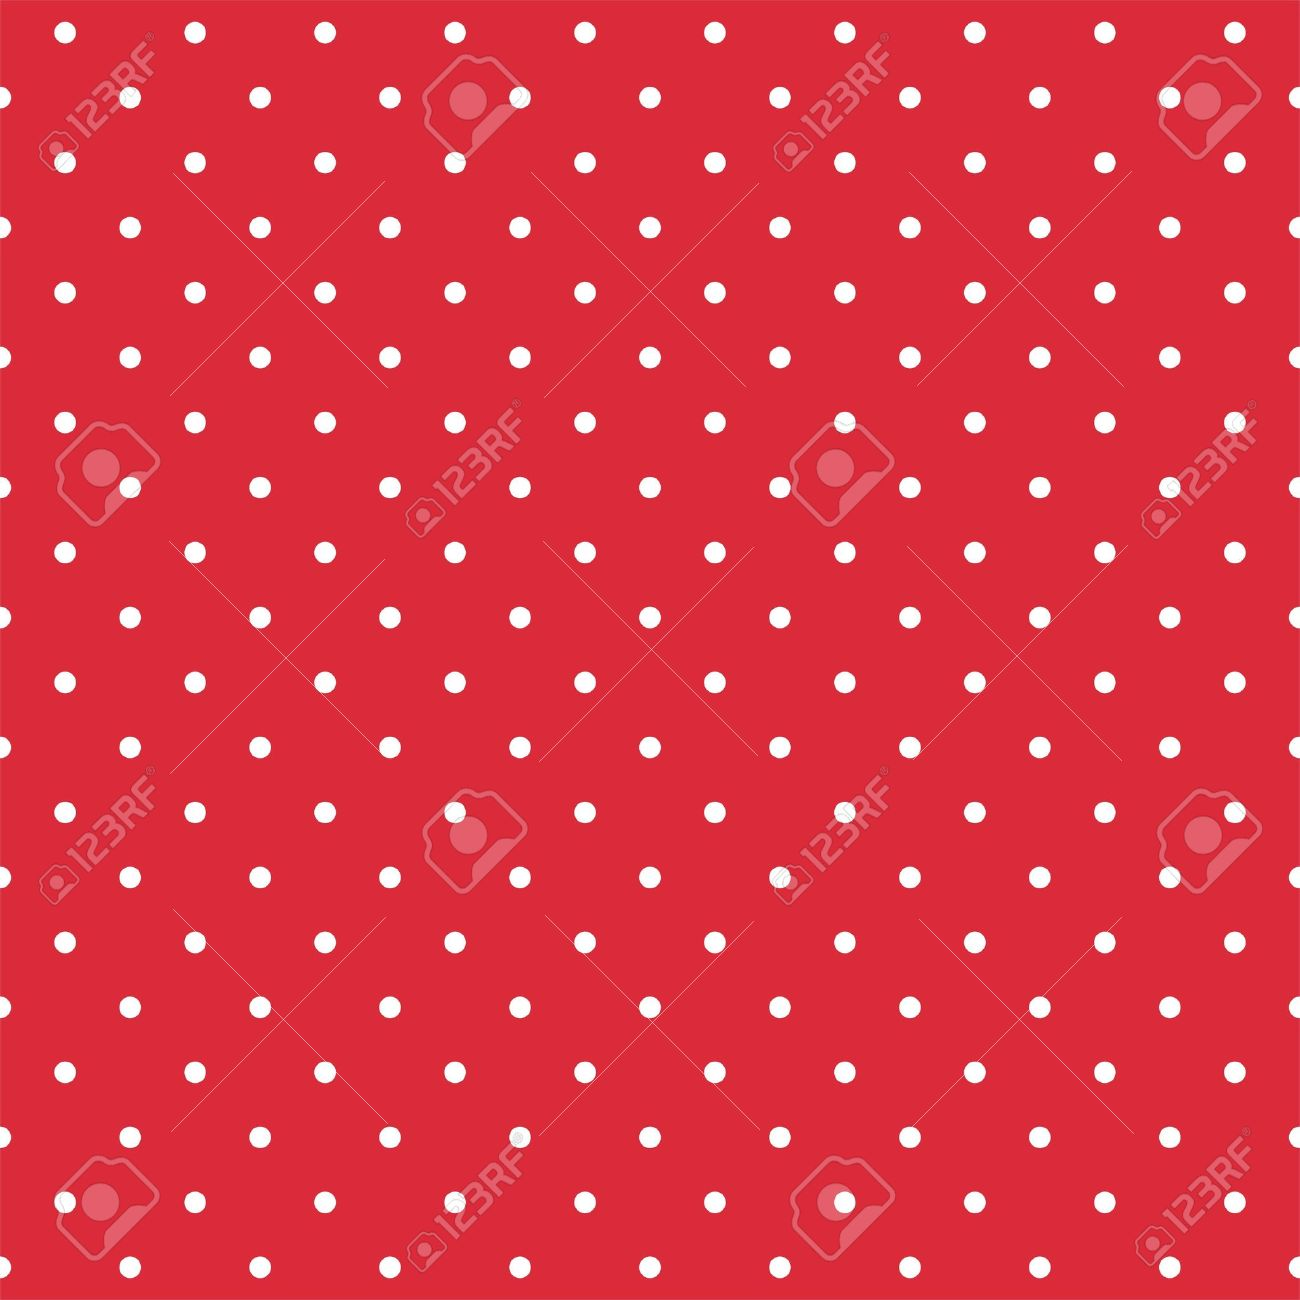 Retro vector pattern with white polka dots on red background - retro seamless pattern for backgrounds, blogs, www, scrapbooks, party or baby shower invitations and wedding cards Stock Vector - 14441052